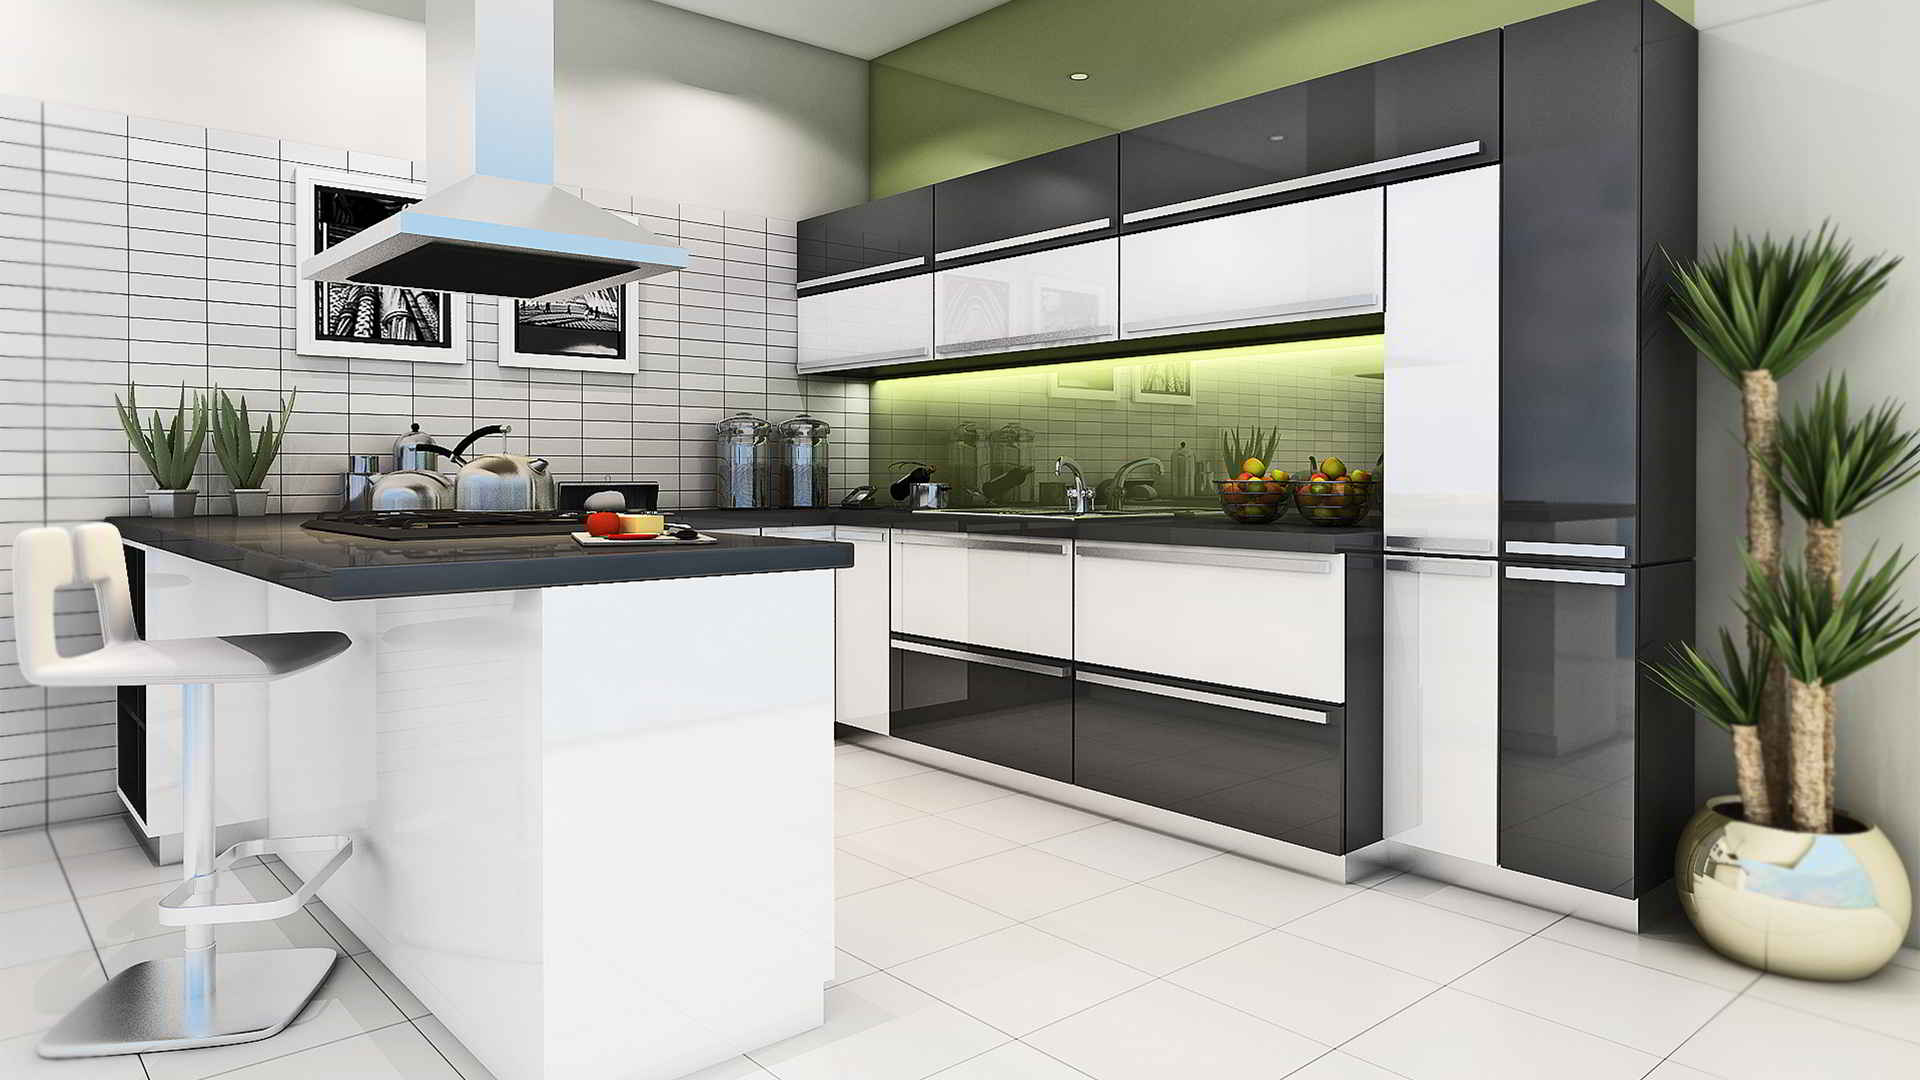 Kitchen Wallpaper High Resolution Download Kitchen   Hd Images Of ...